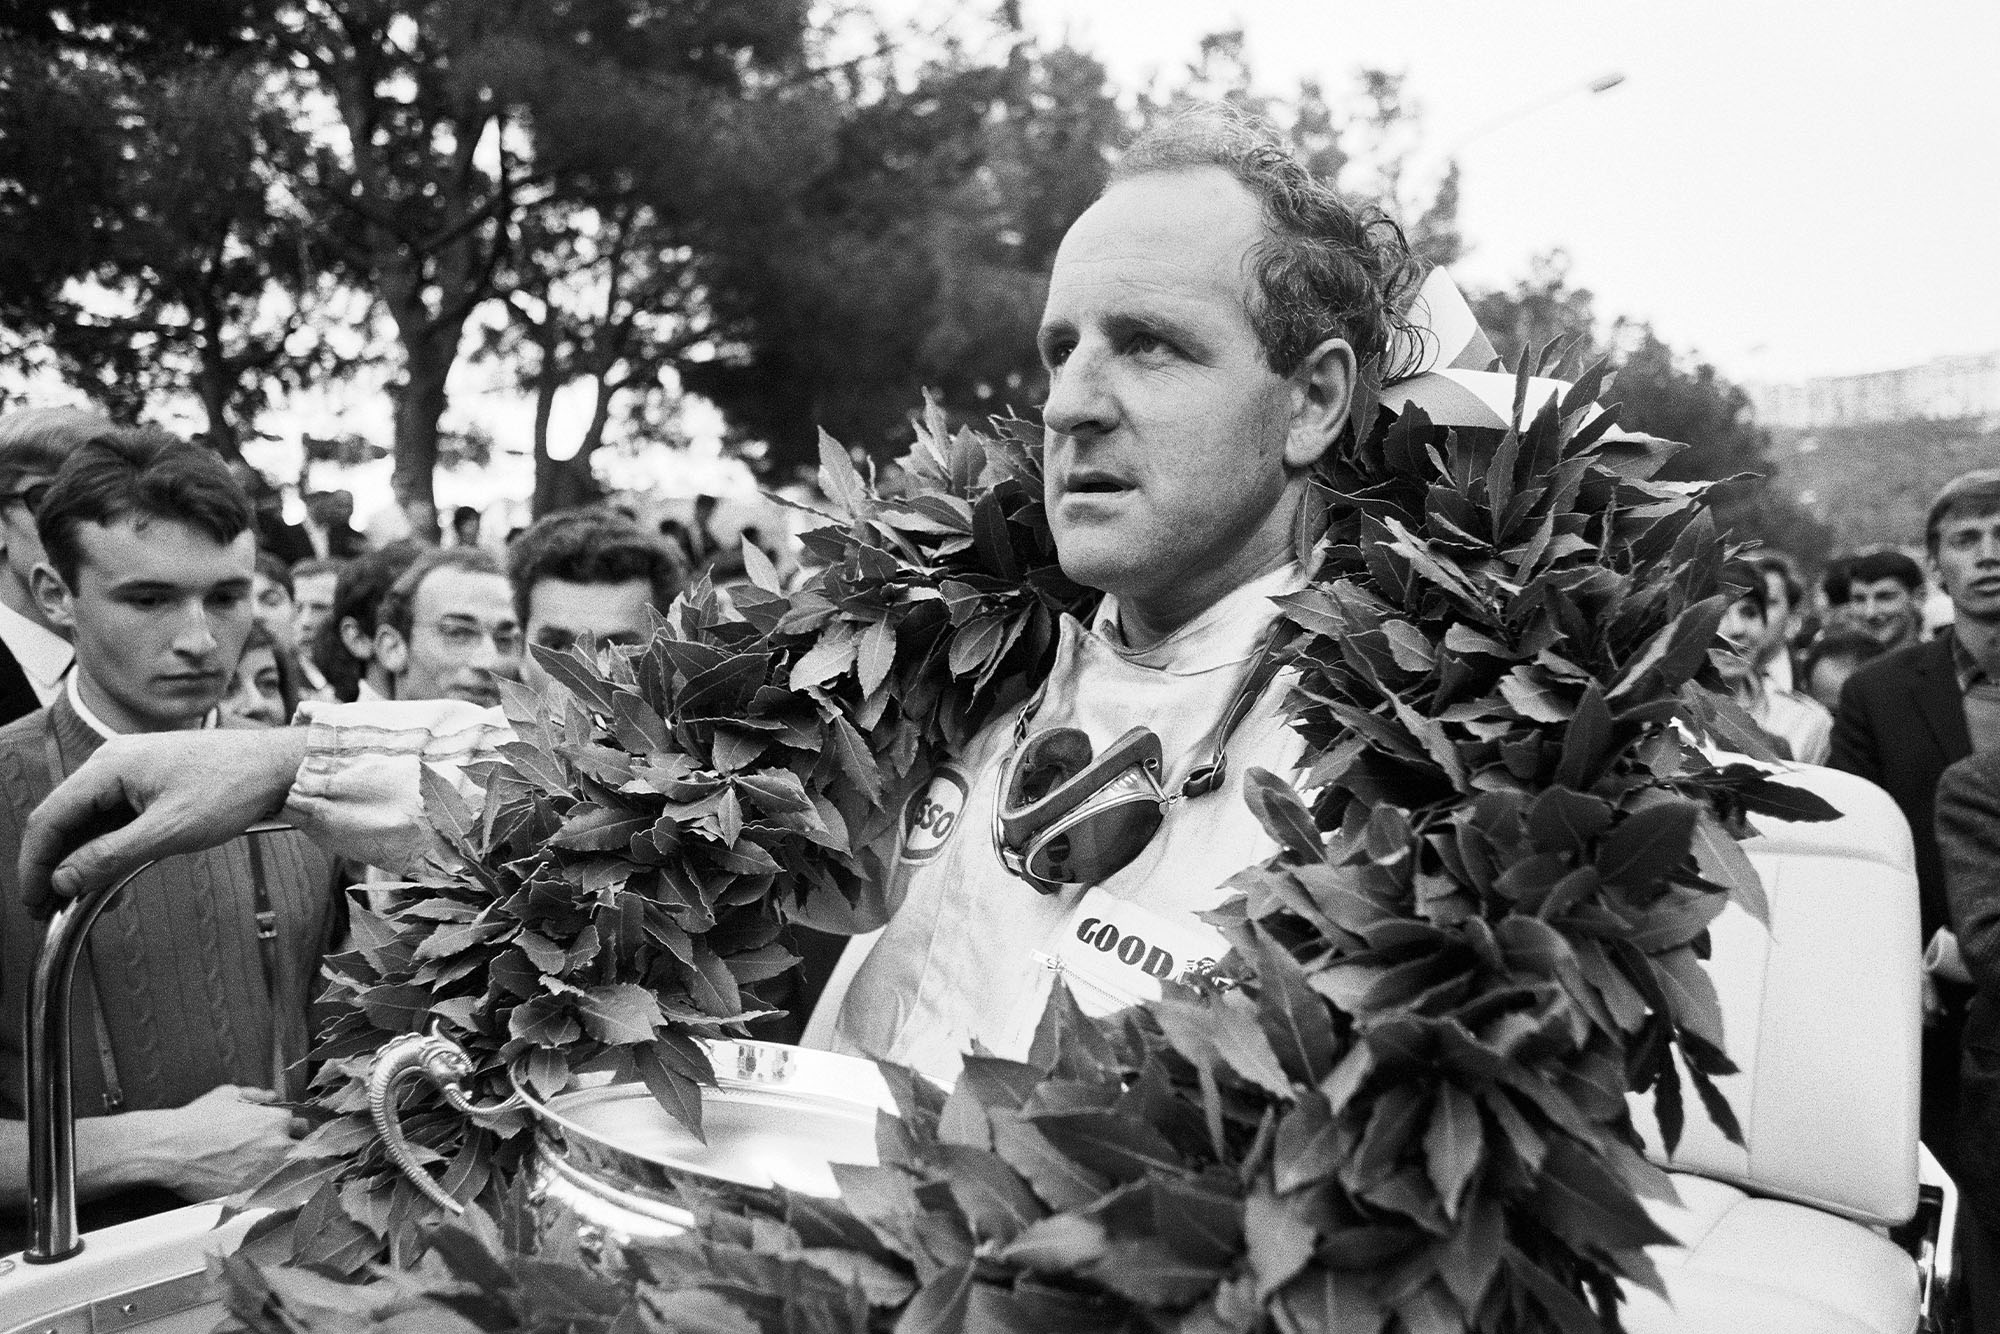 Denny Hulme with the Monaco GP winner's wreath and trophy.